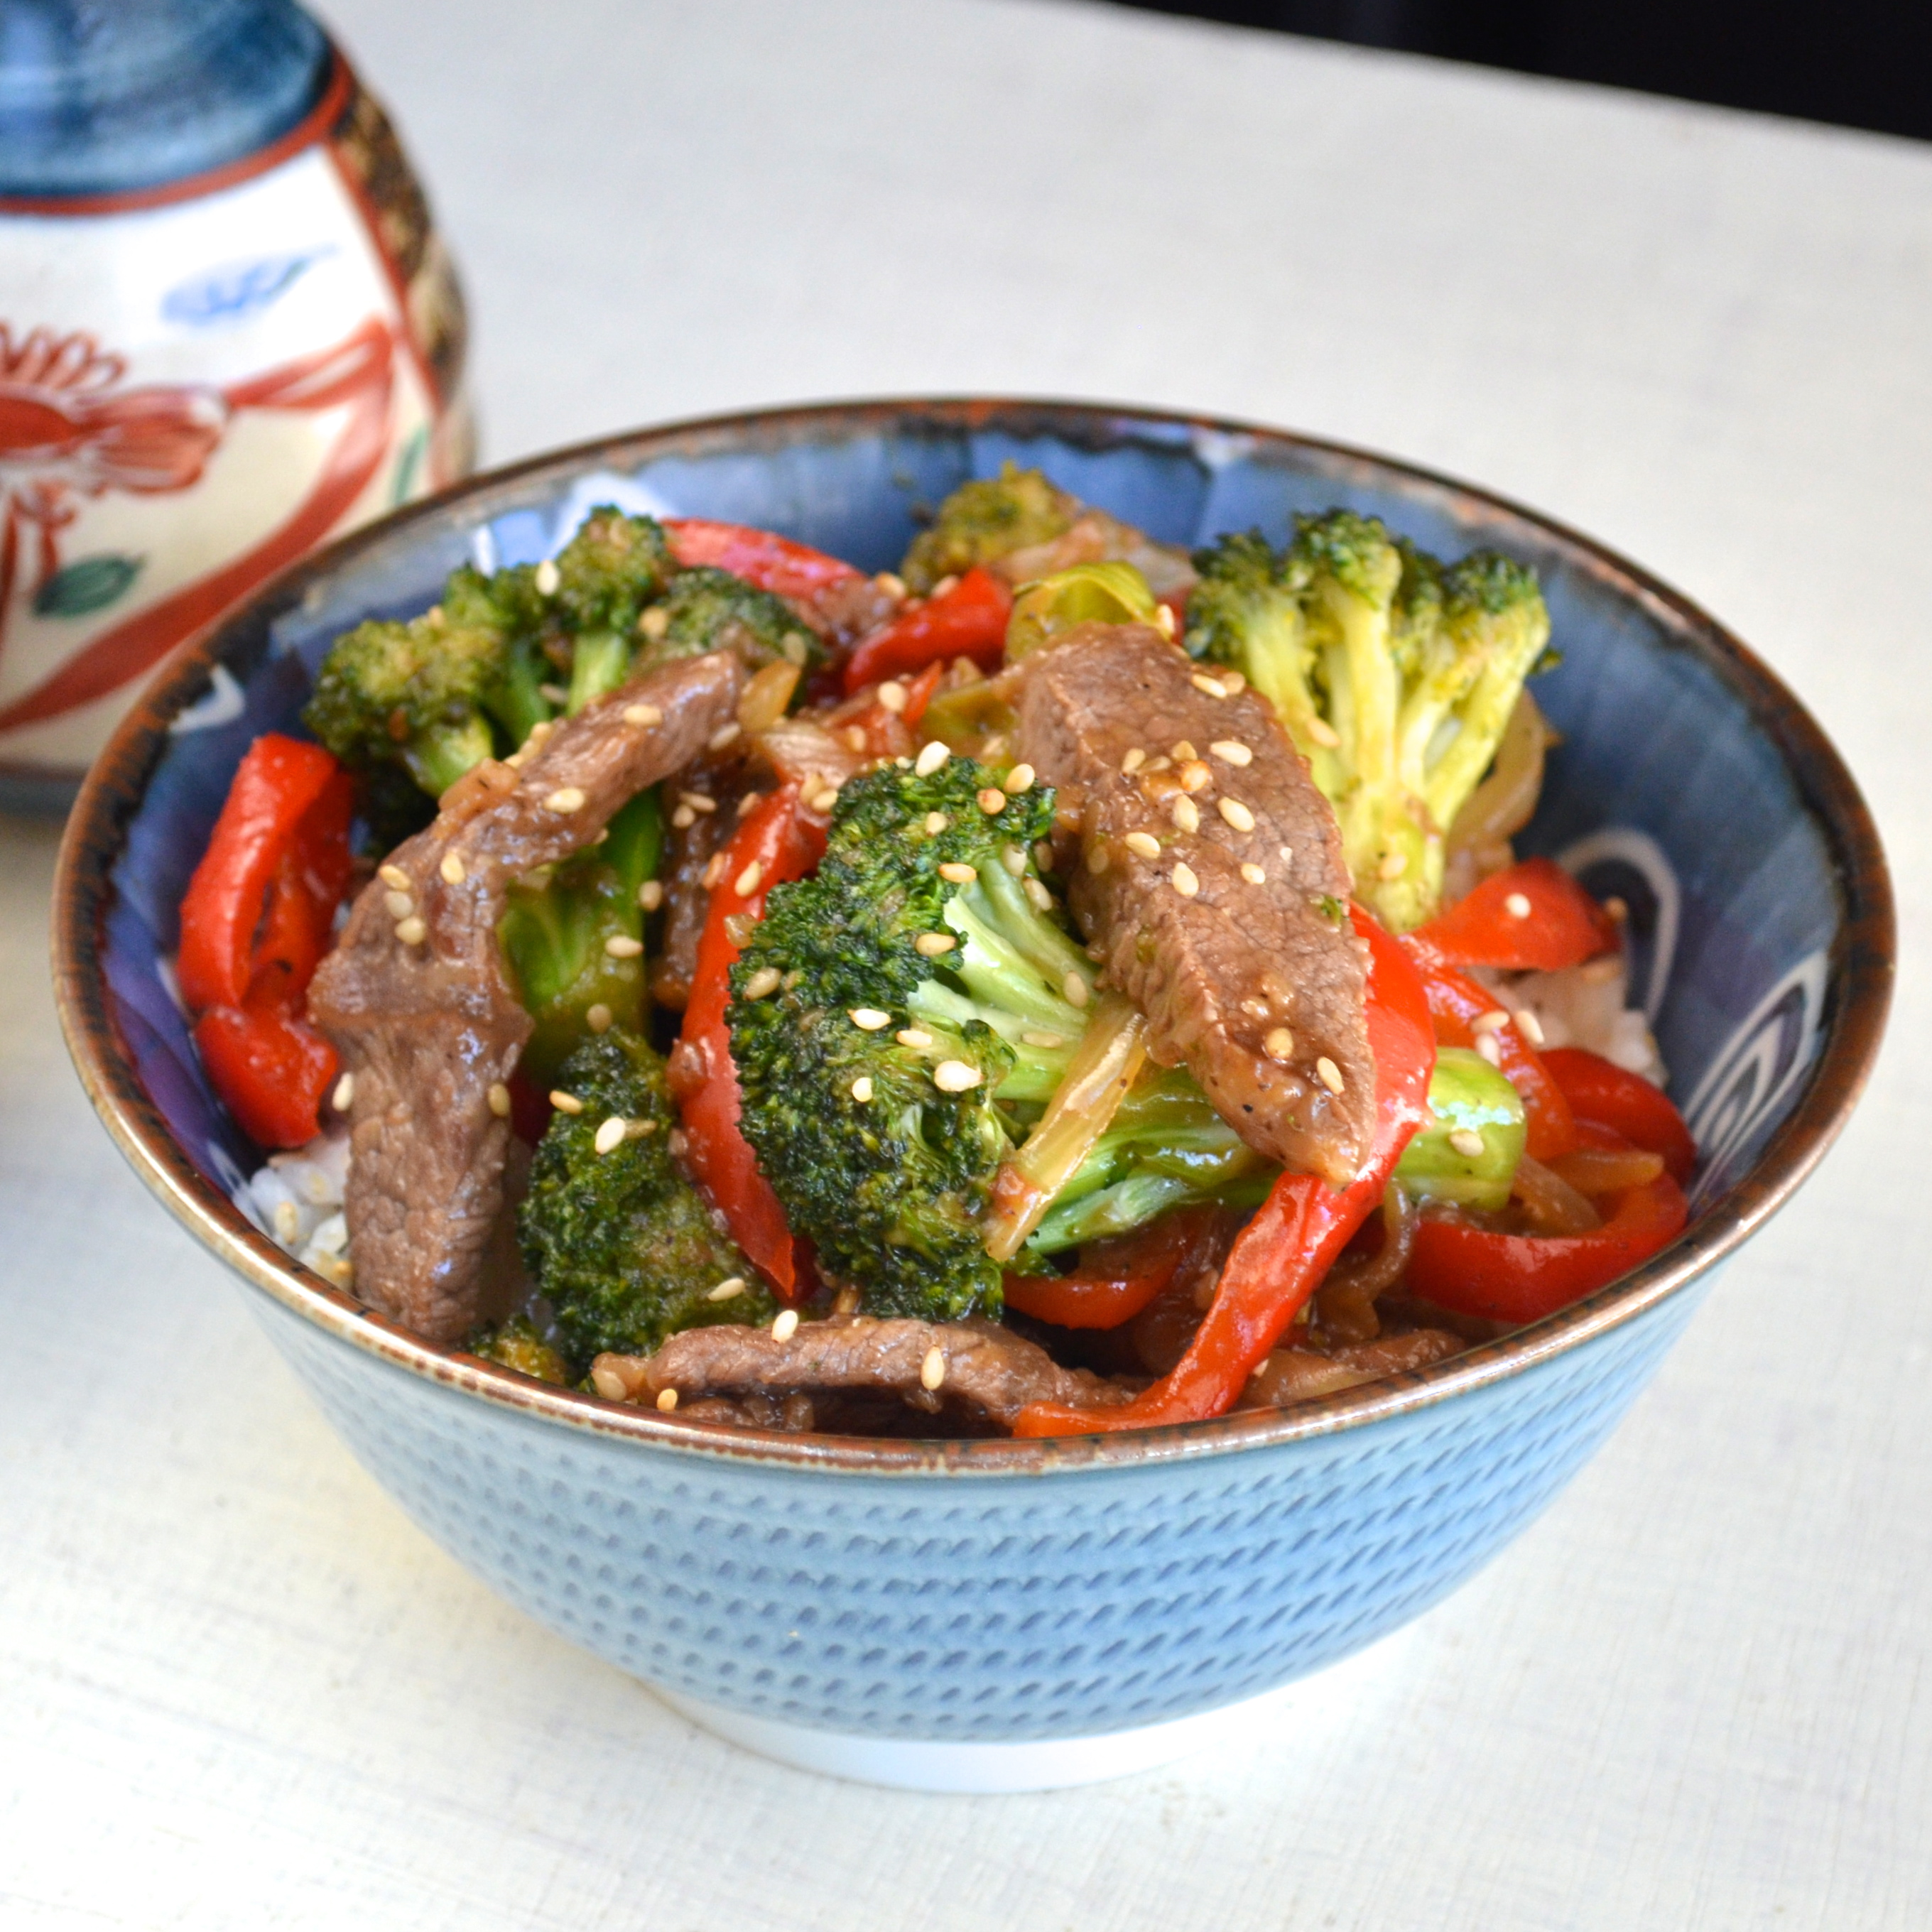 Broccoli and Beef Recipe - Apple of My Eye